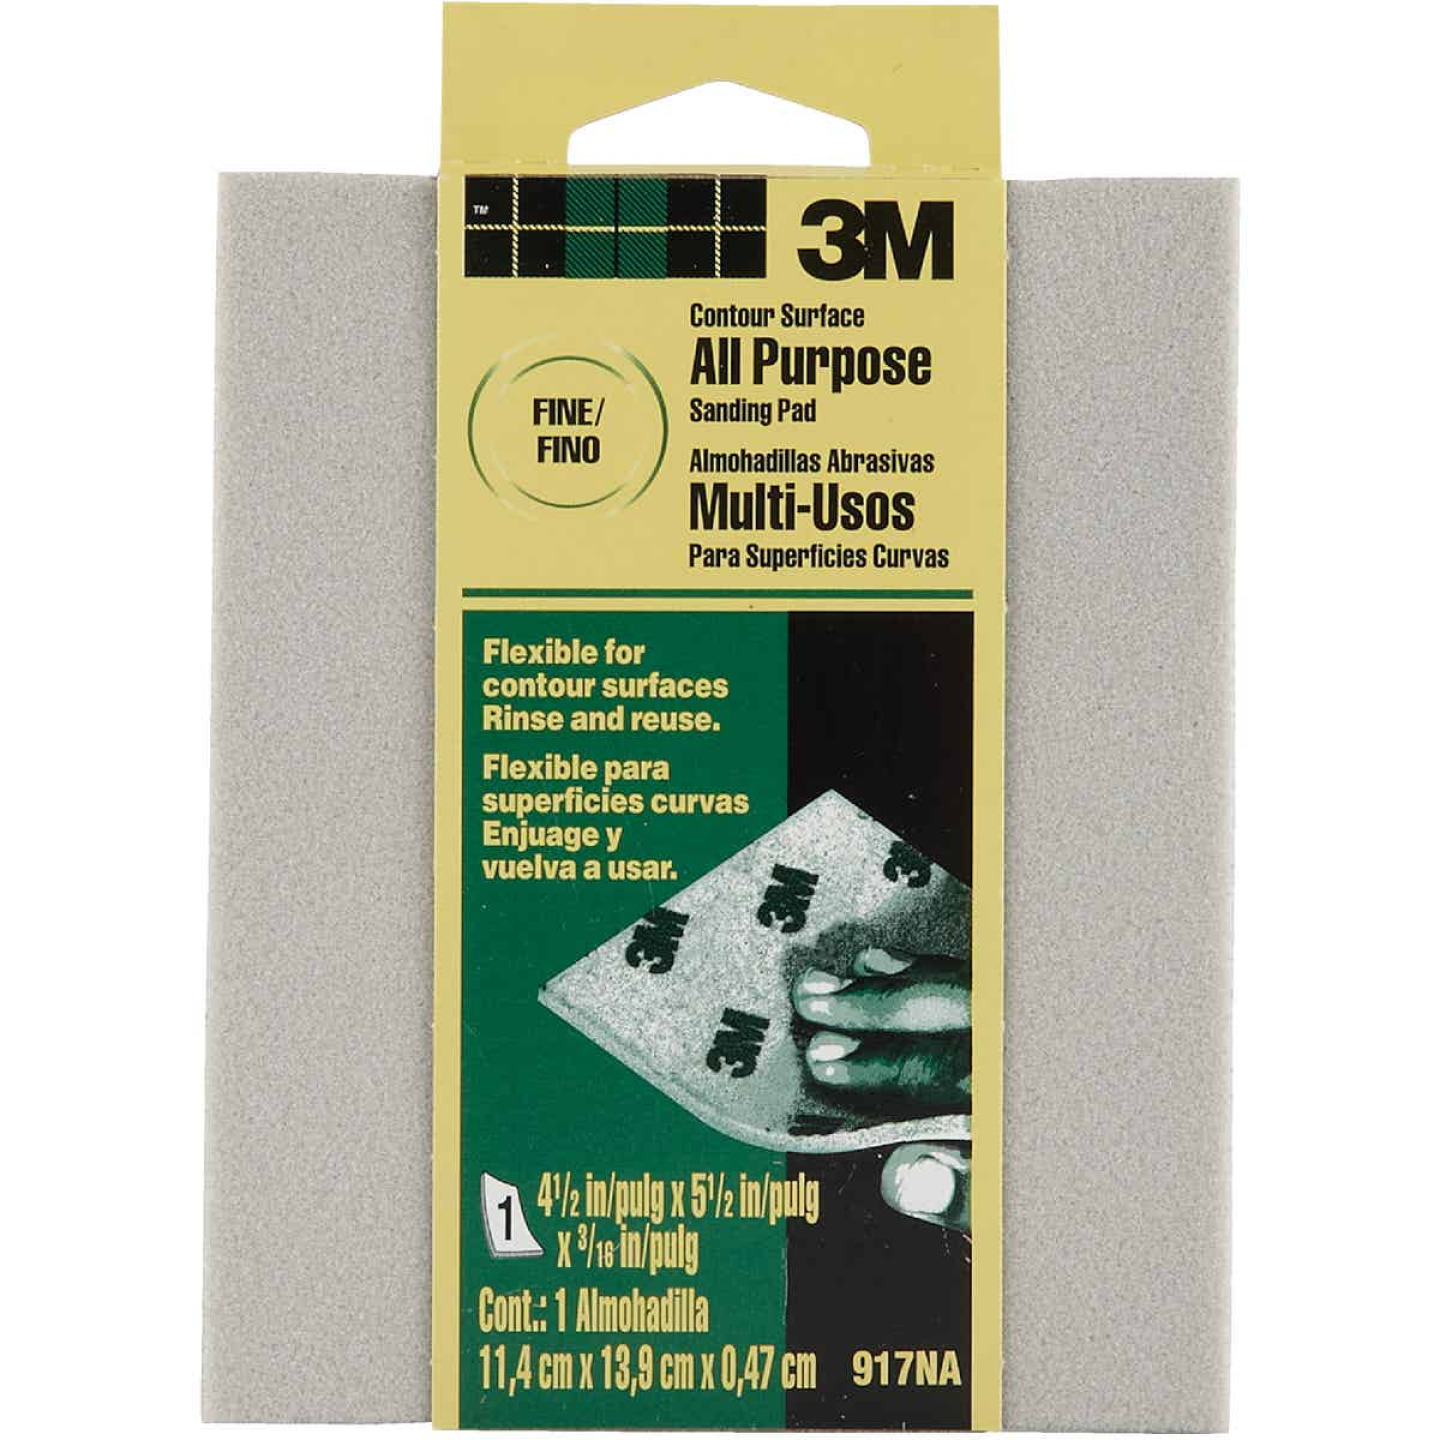 3M Contour Surface All-Purpose 4-1/2 In. x 5-1/2 In. x 3/16 In. Fine Sanding Sponge Image 1